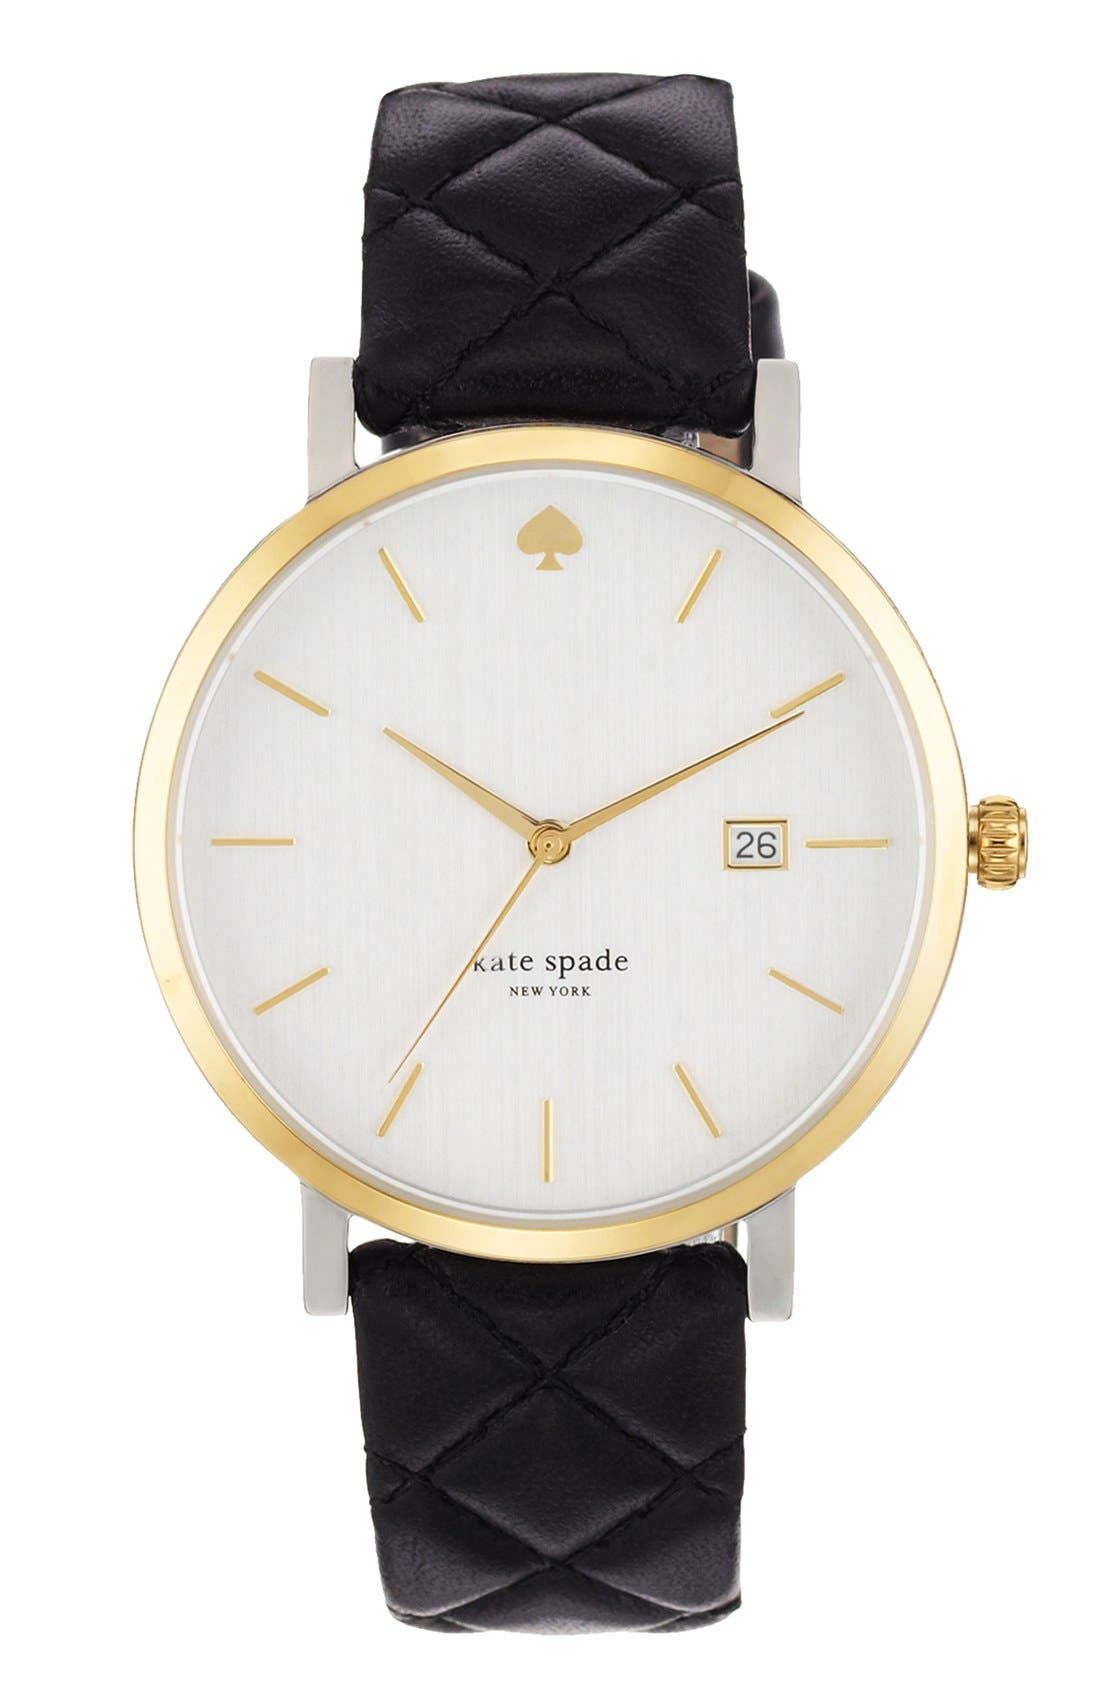 KATE SPADE NEW YORK, 'metro grand' quilted strap watch, 38mm, Alternate thumbnail 6, color, 001